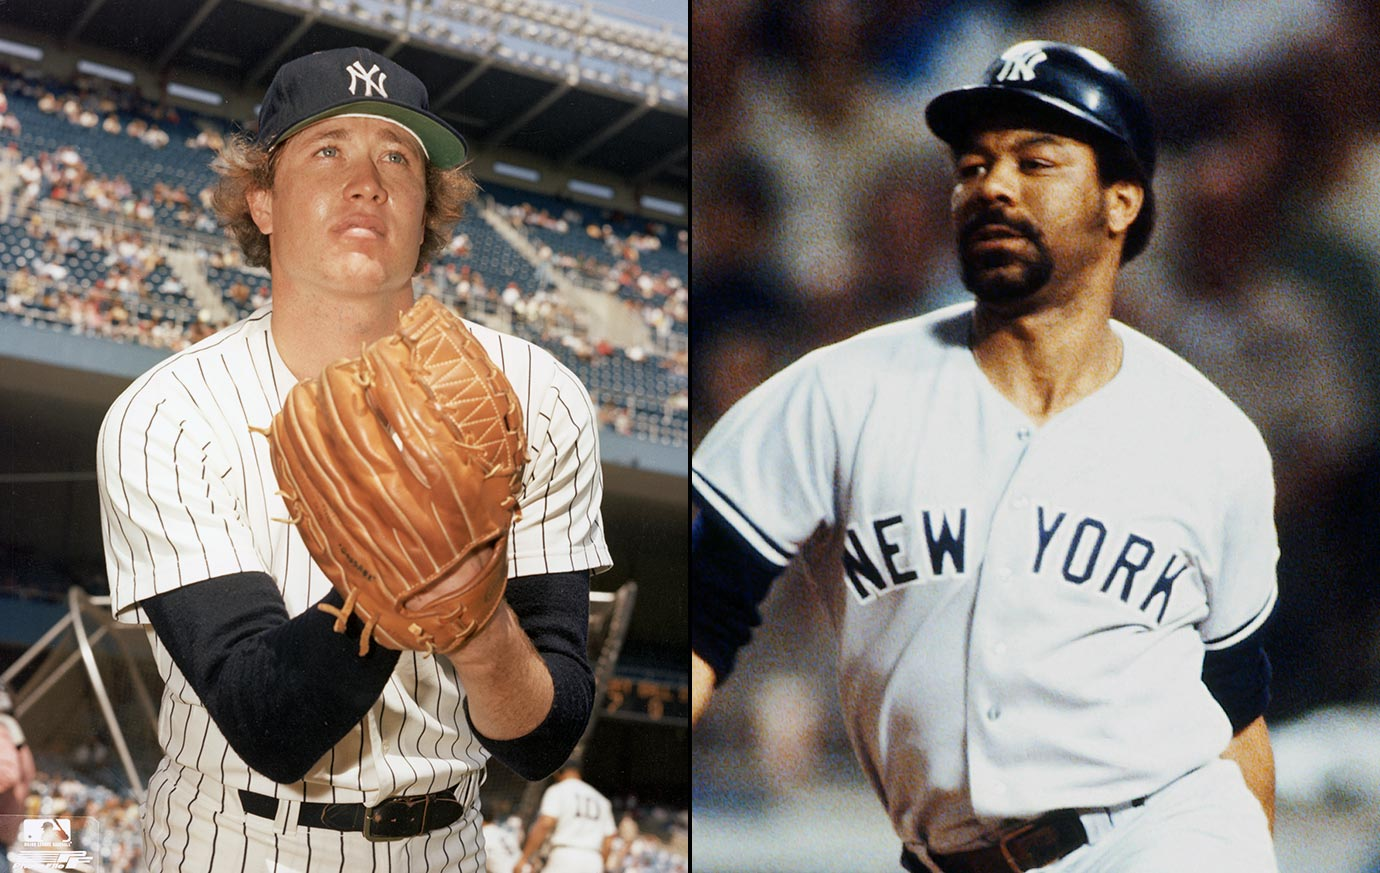 The Yankees were two-time defending World Series champions, but this fight was the first sign that their 1979 season was doomed. The altercation started almost as a joke, but quickly escalated after Gossage made a comment that Johnson couldn't hit him when the two were opponents in the National League. The two went at it in the bathroom, and at one point Gossage fell against a shower wall and injured his thumb, sidelining him for two months.